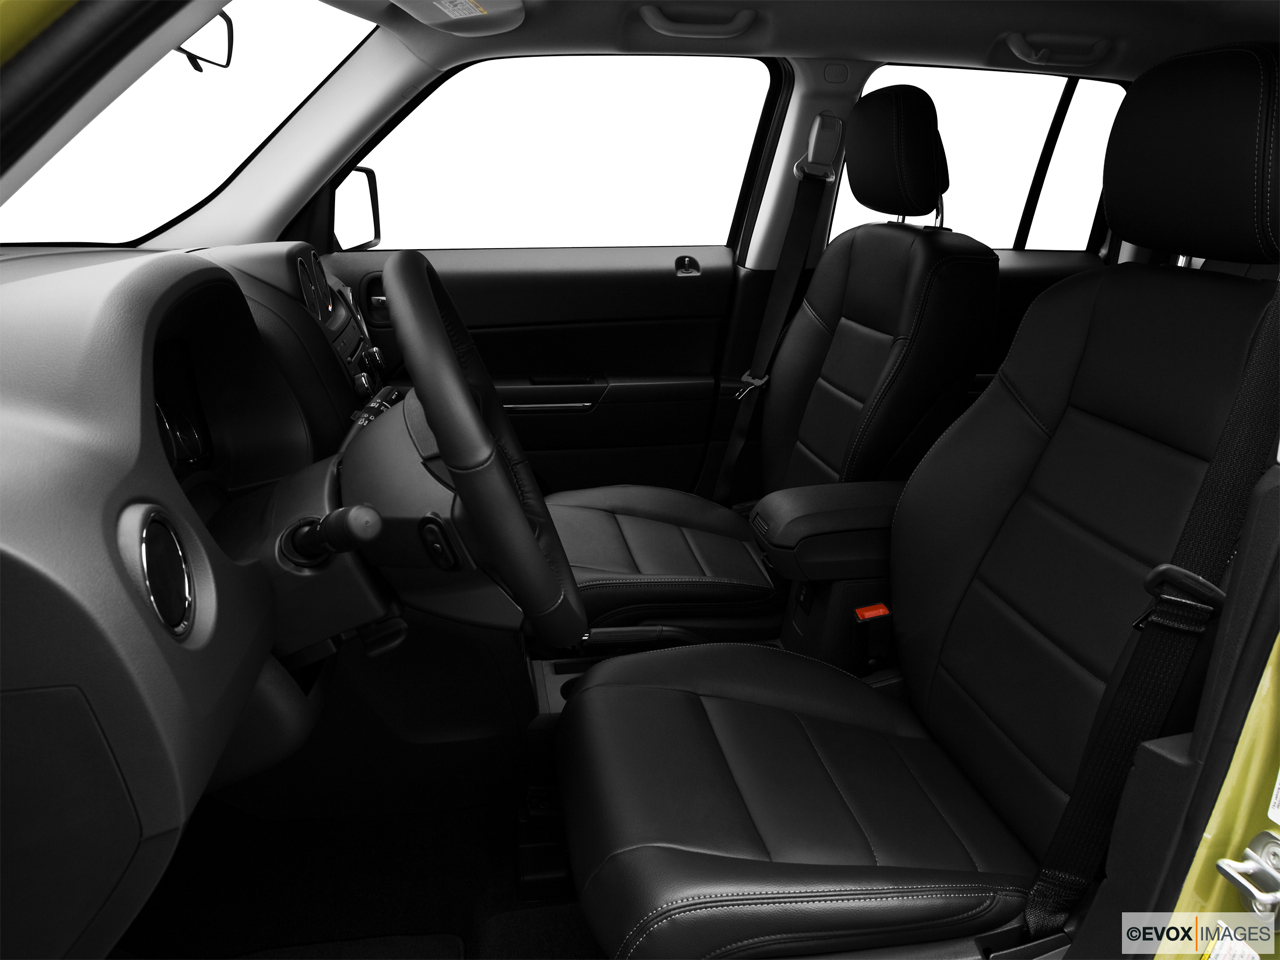 2010 Jeep Patriot Limited Front seats from Drivers Side.